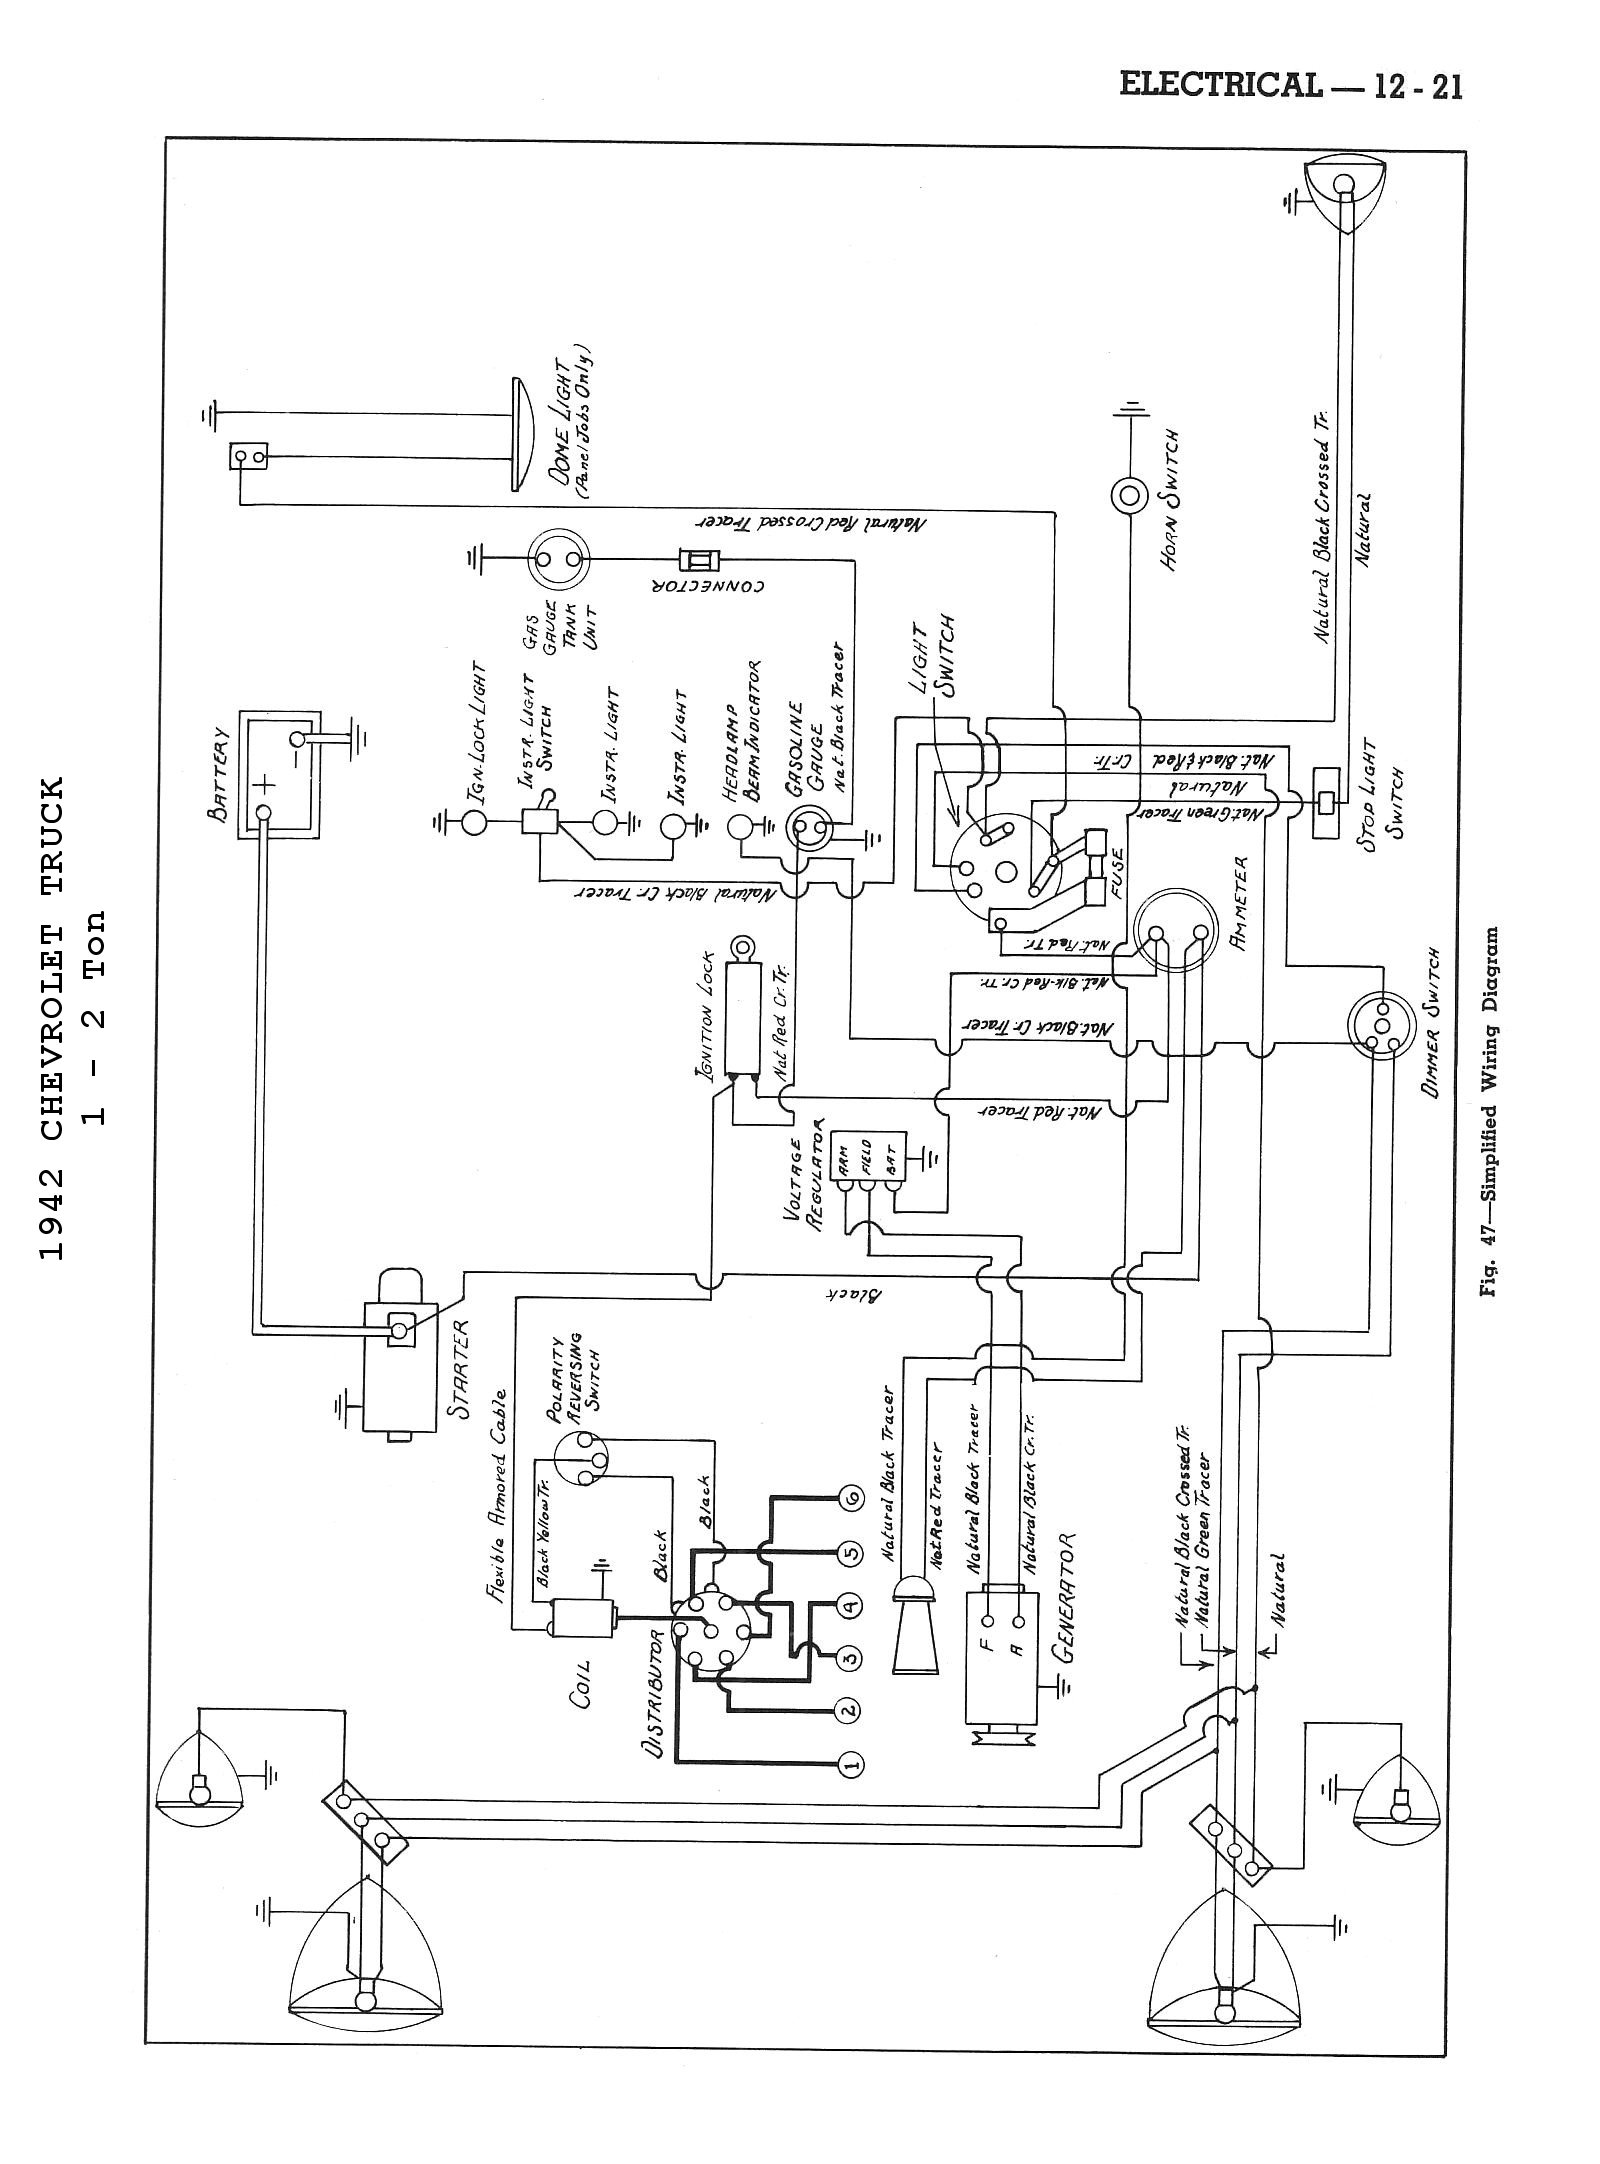 Wiring Diagram For 1937 Studebaker 2 3 Ton Cab Forward